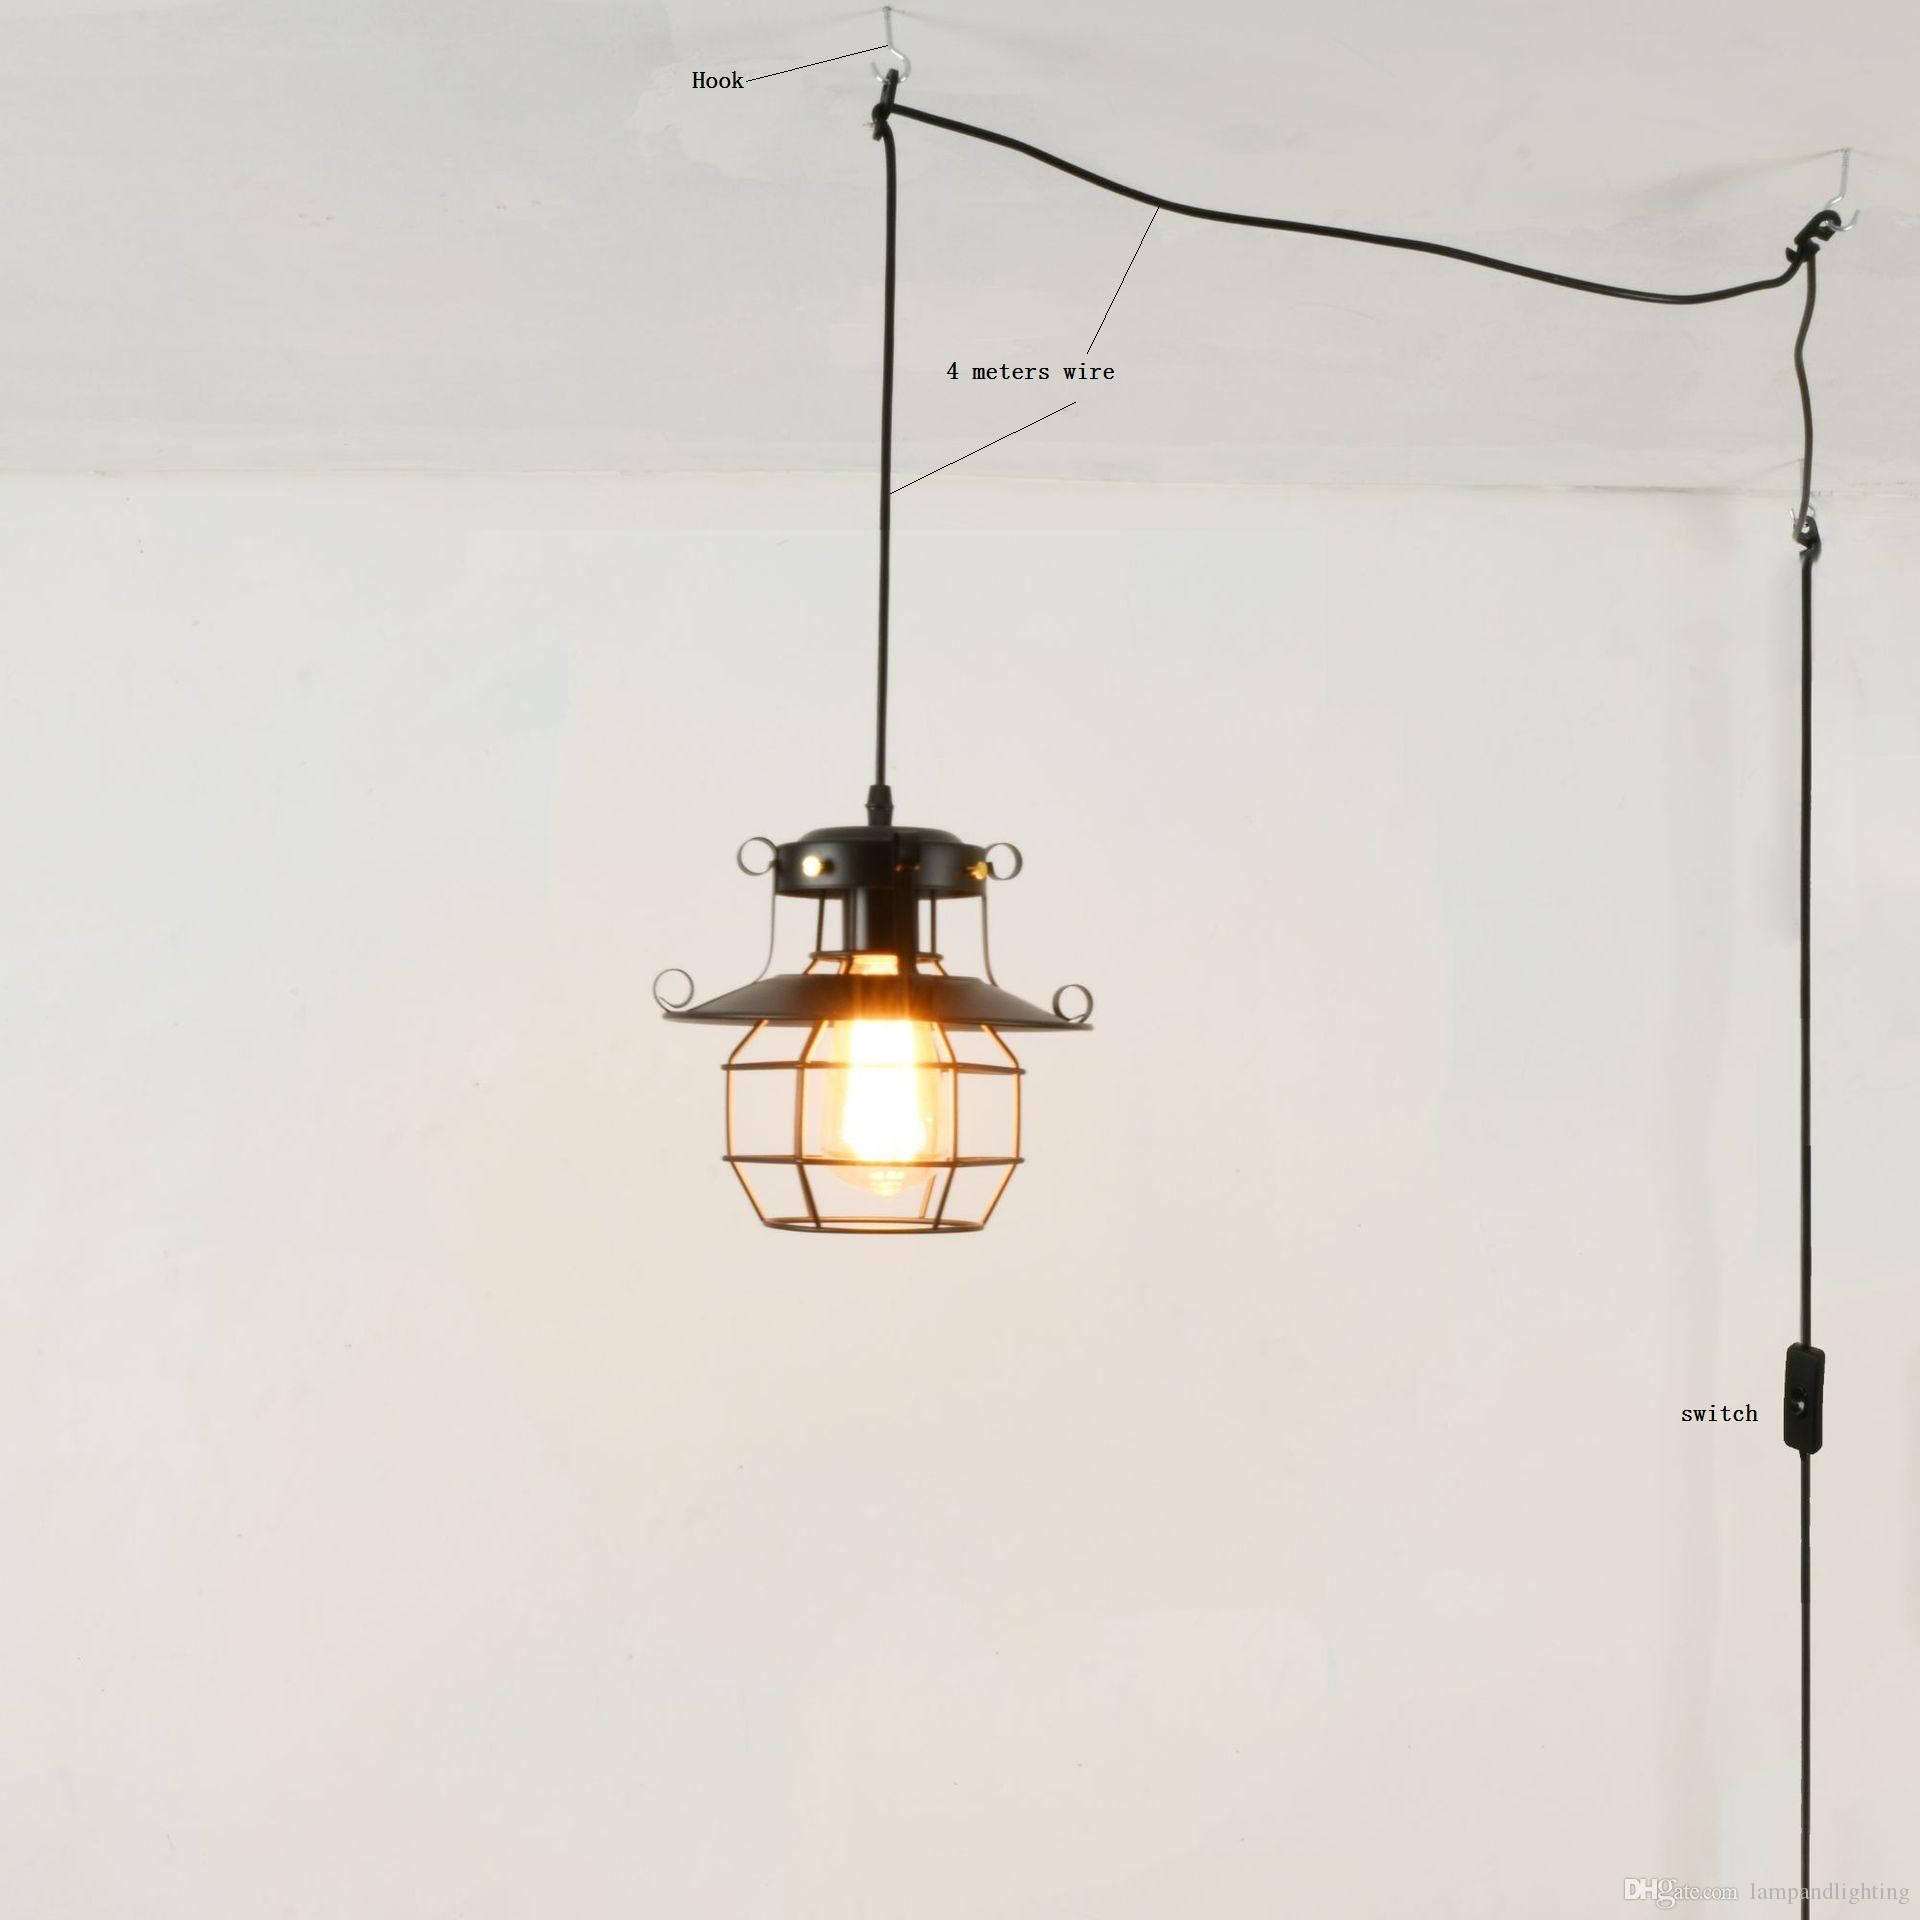 Retro Us Eu Standard 4 Meters Wire Single Pendant Light Fixture